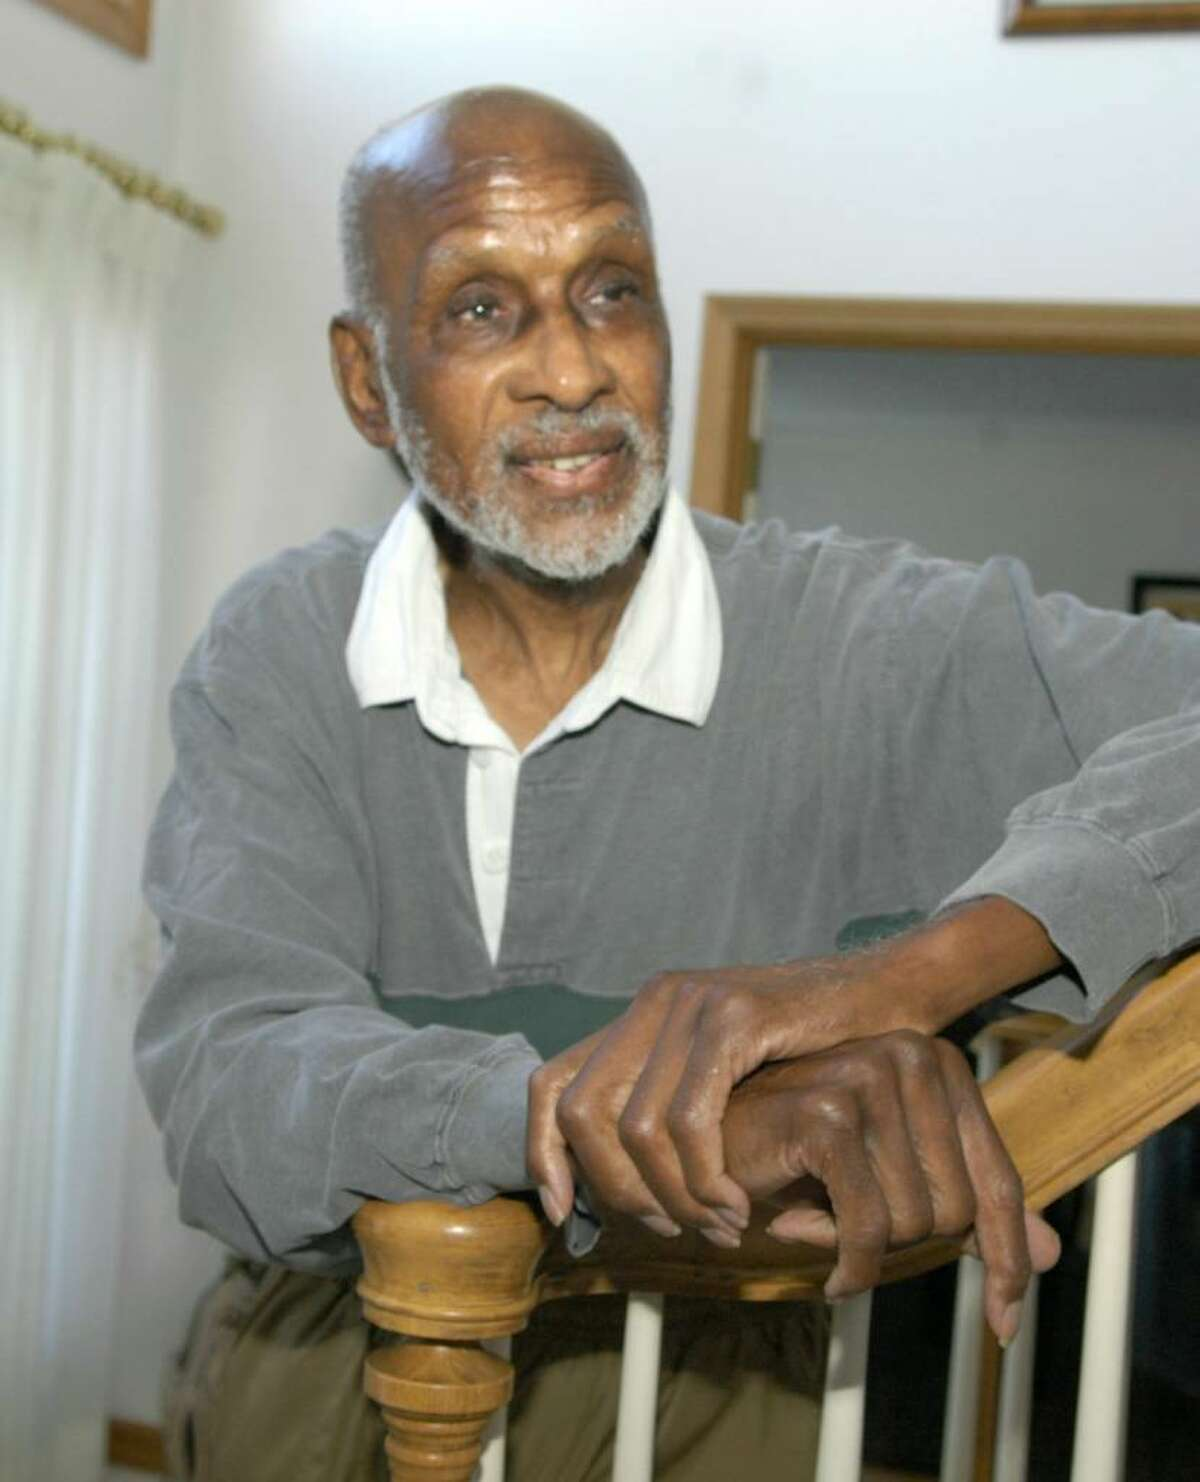 """Herbert Wright, who just turned 82, is a former Civil Rights leader and a high-profile member of the NAACP. He is a resident who will be featured Friday night at """"A Night of Gospel Music"""" at Victory Christain Center in Danbury."""